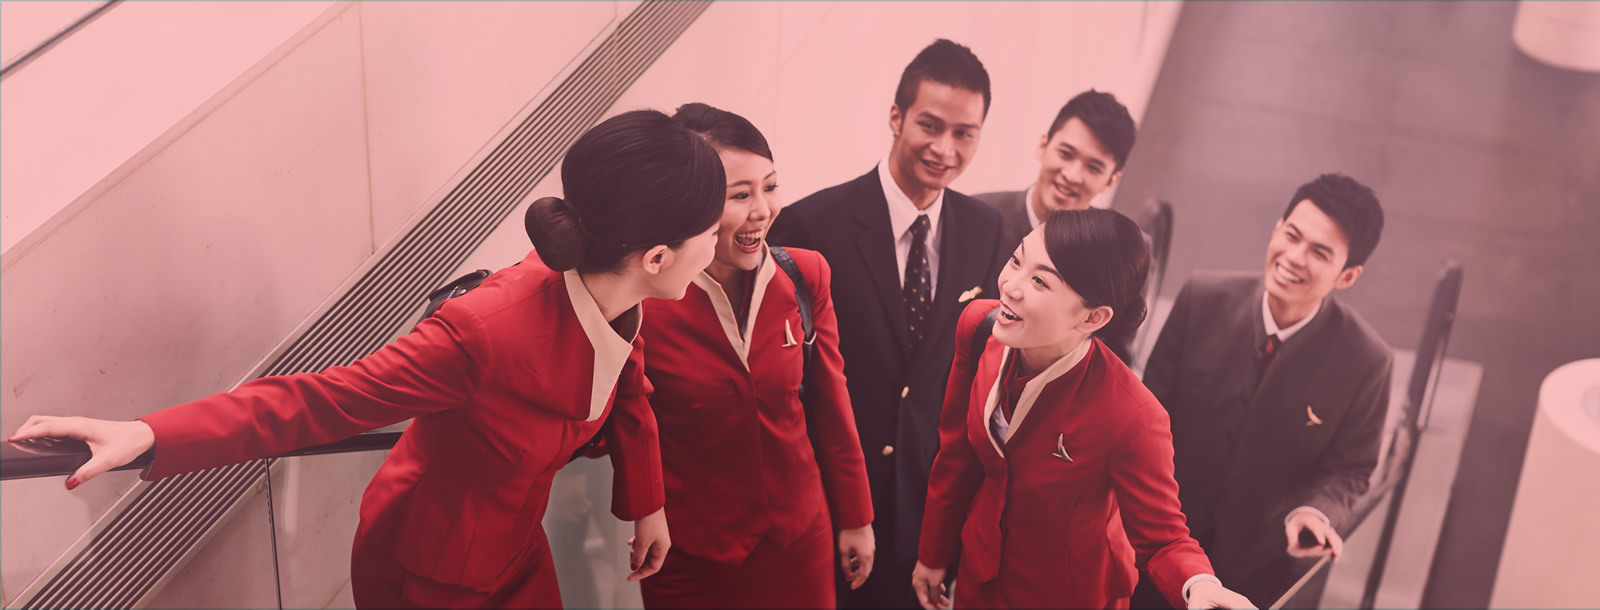 Fly gosh cathay pacific cabin crew recruitment base in for Korean air cabin crew requirements